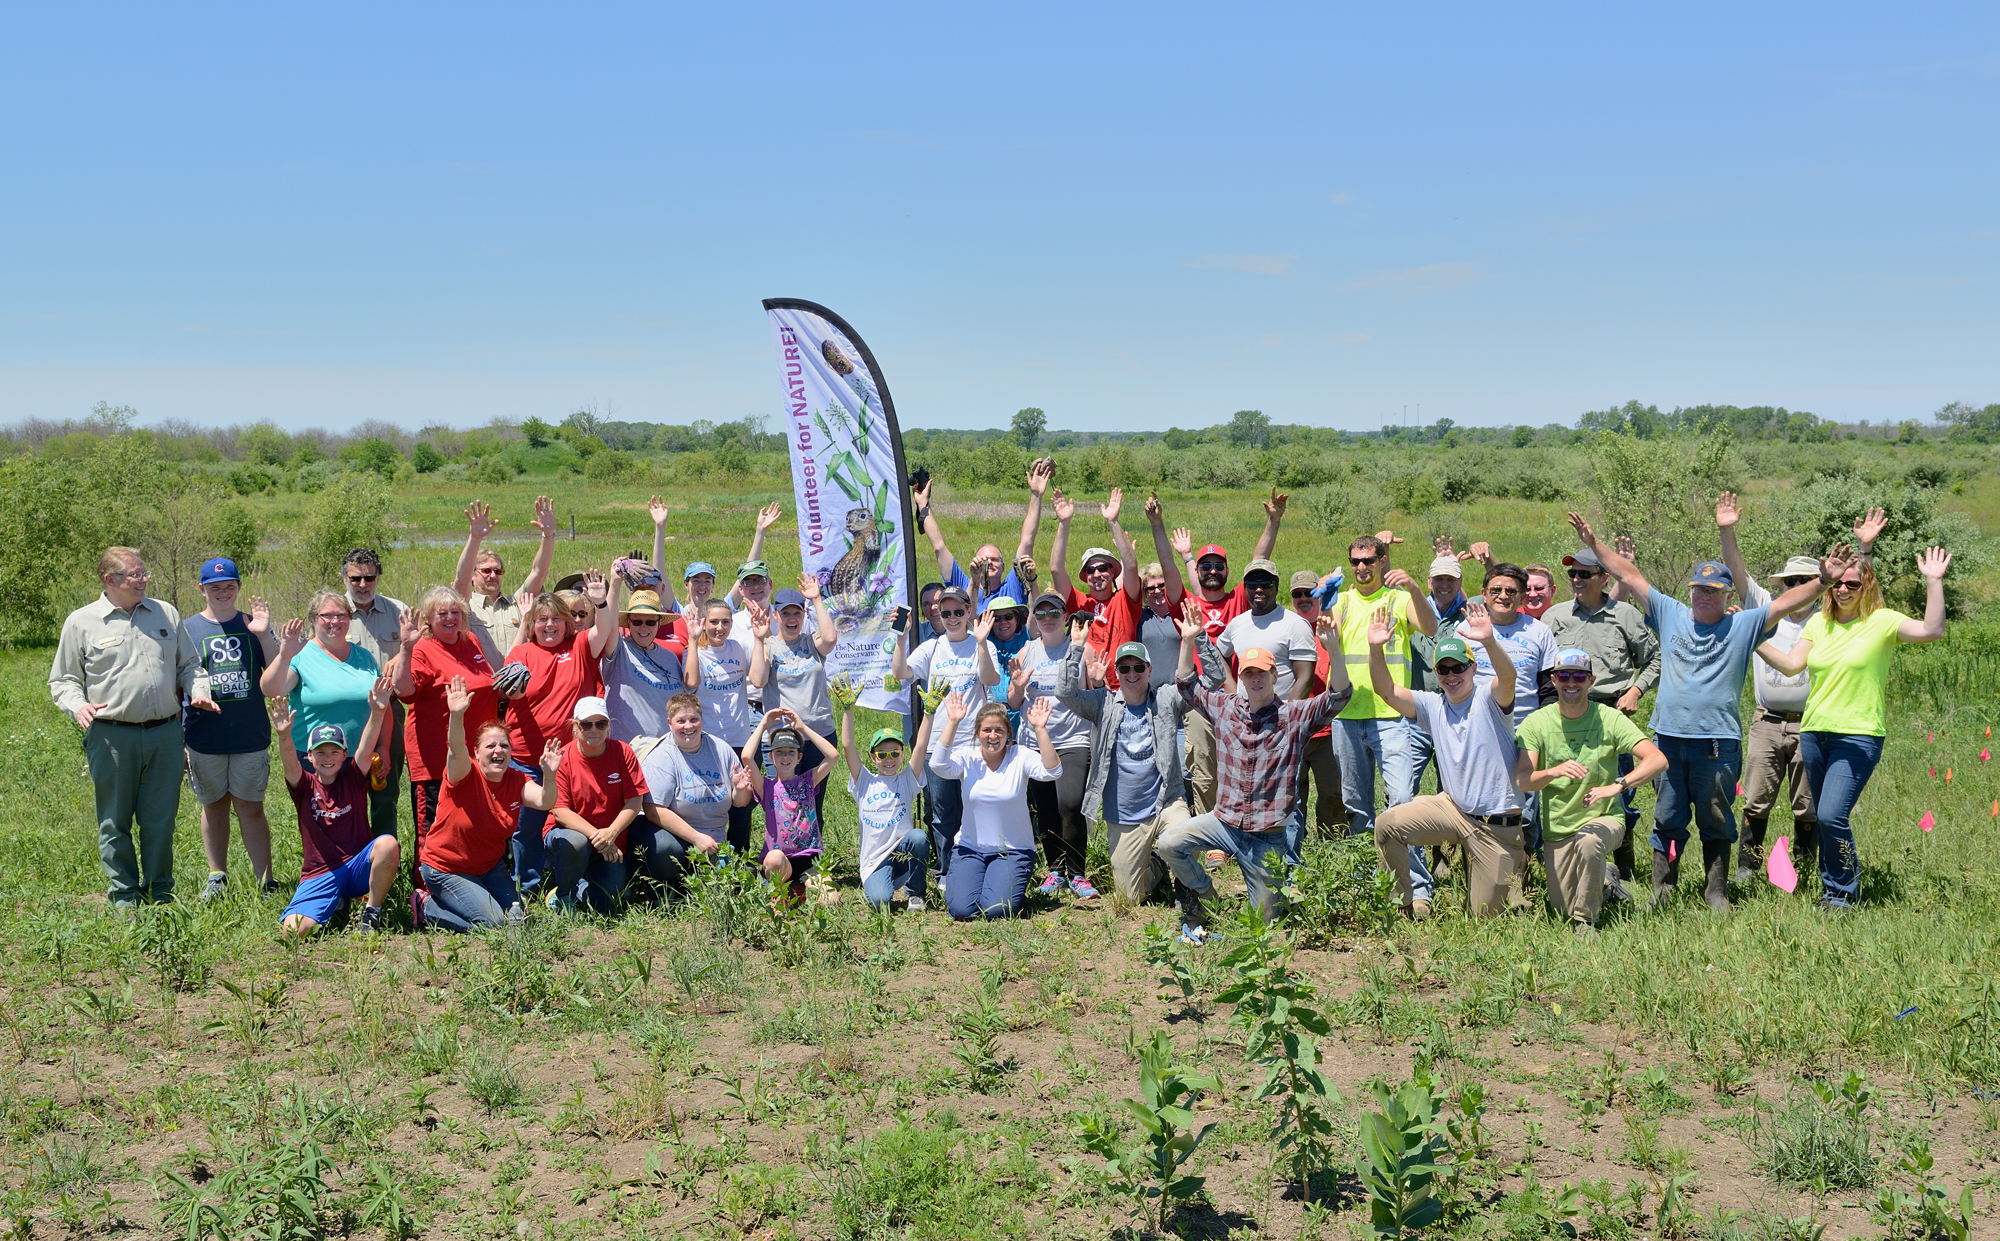 "On June 8, 2017, four companies with facilities neighboring Midewin were recognized as Prairie Champions for the second year running for their support of TWI's Midewin restoration work through both employee volunteering and corporate donations. In total they sent 32 employees to volunteer at our new ""Secret Ridge"" restoration site at Midewin."